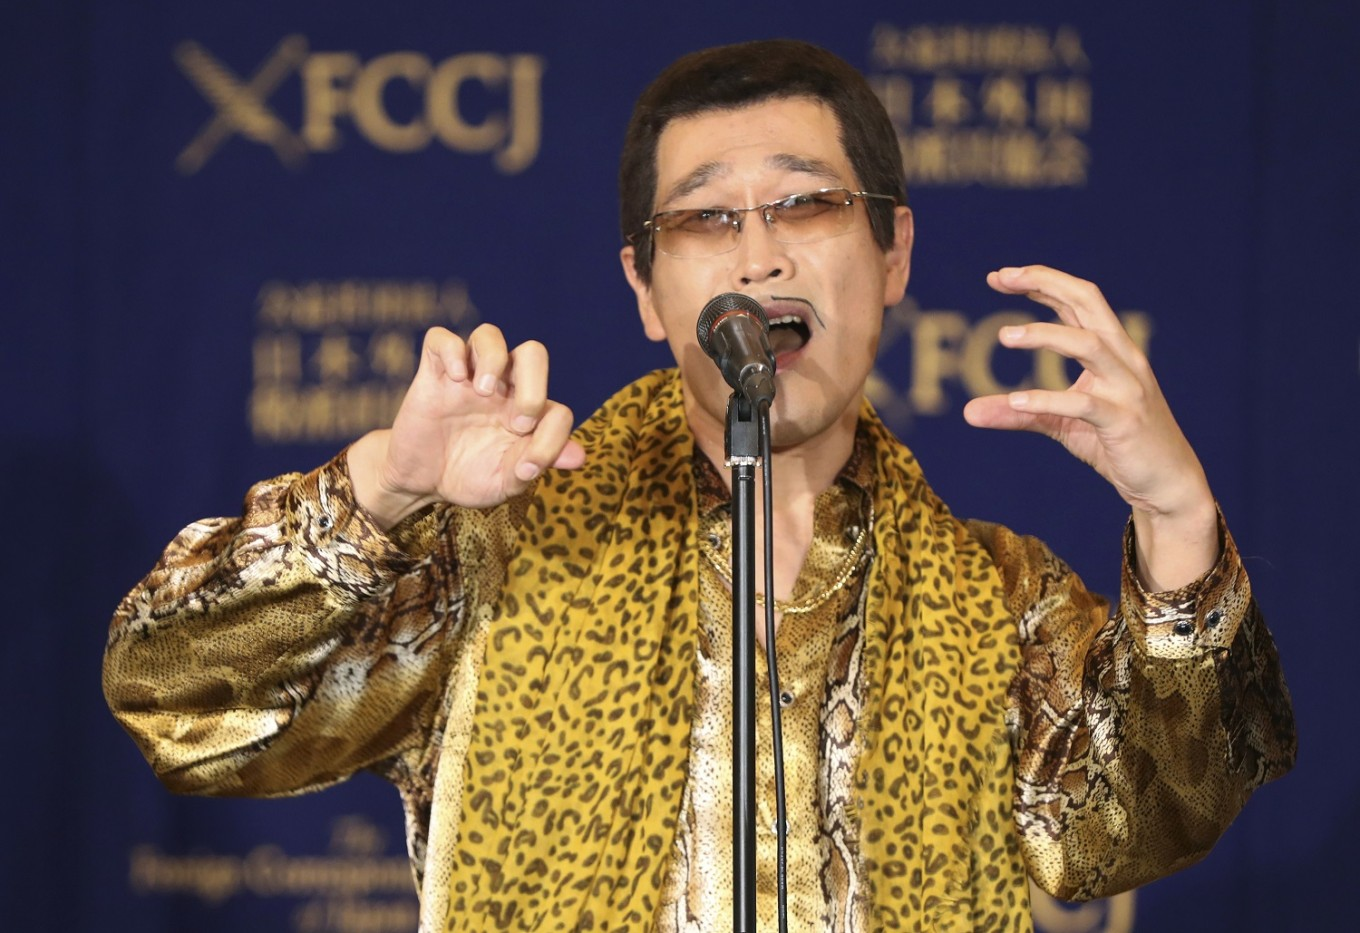 Pen-Pineapple-Apple-Pen sets world record